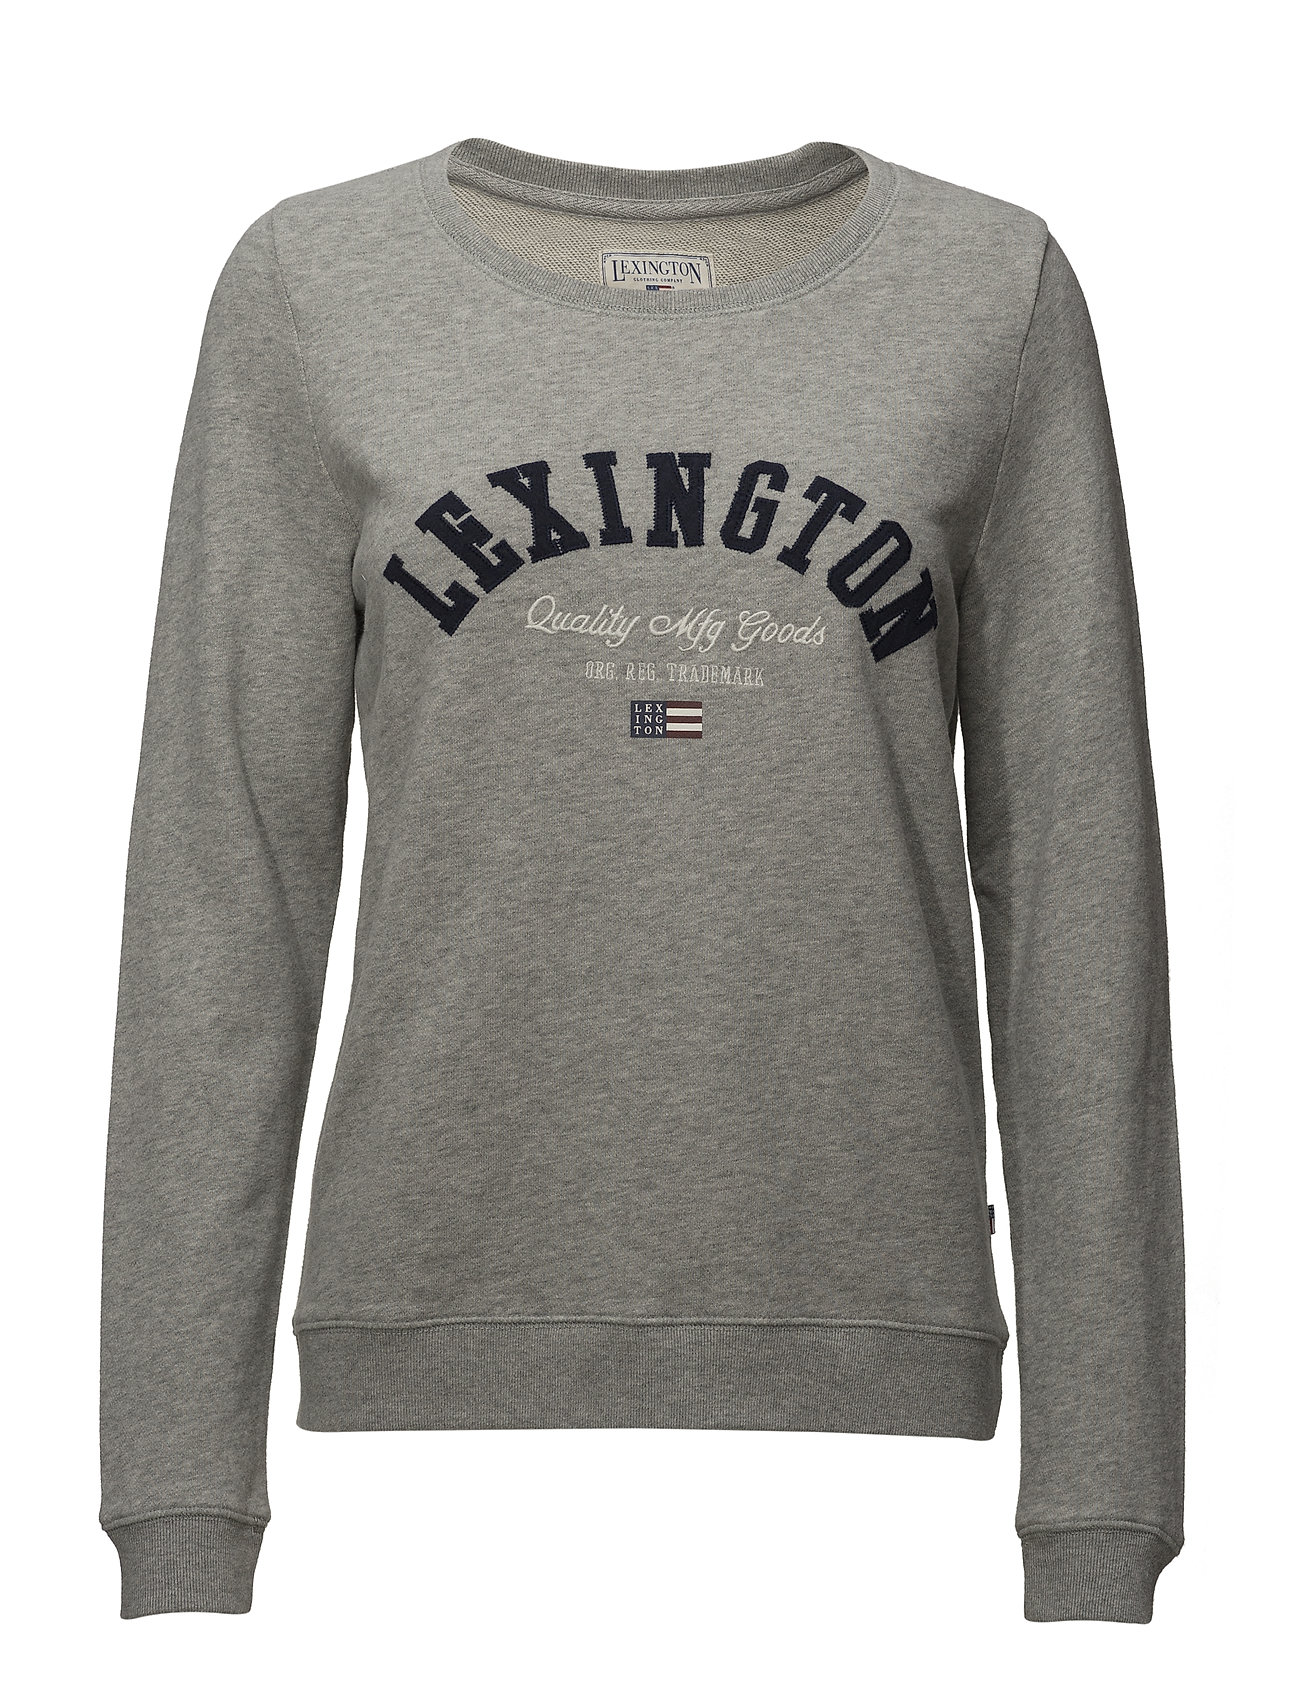 Lexington Clothing Chanice Sweatshirt